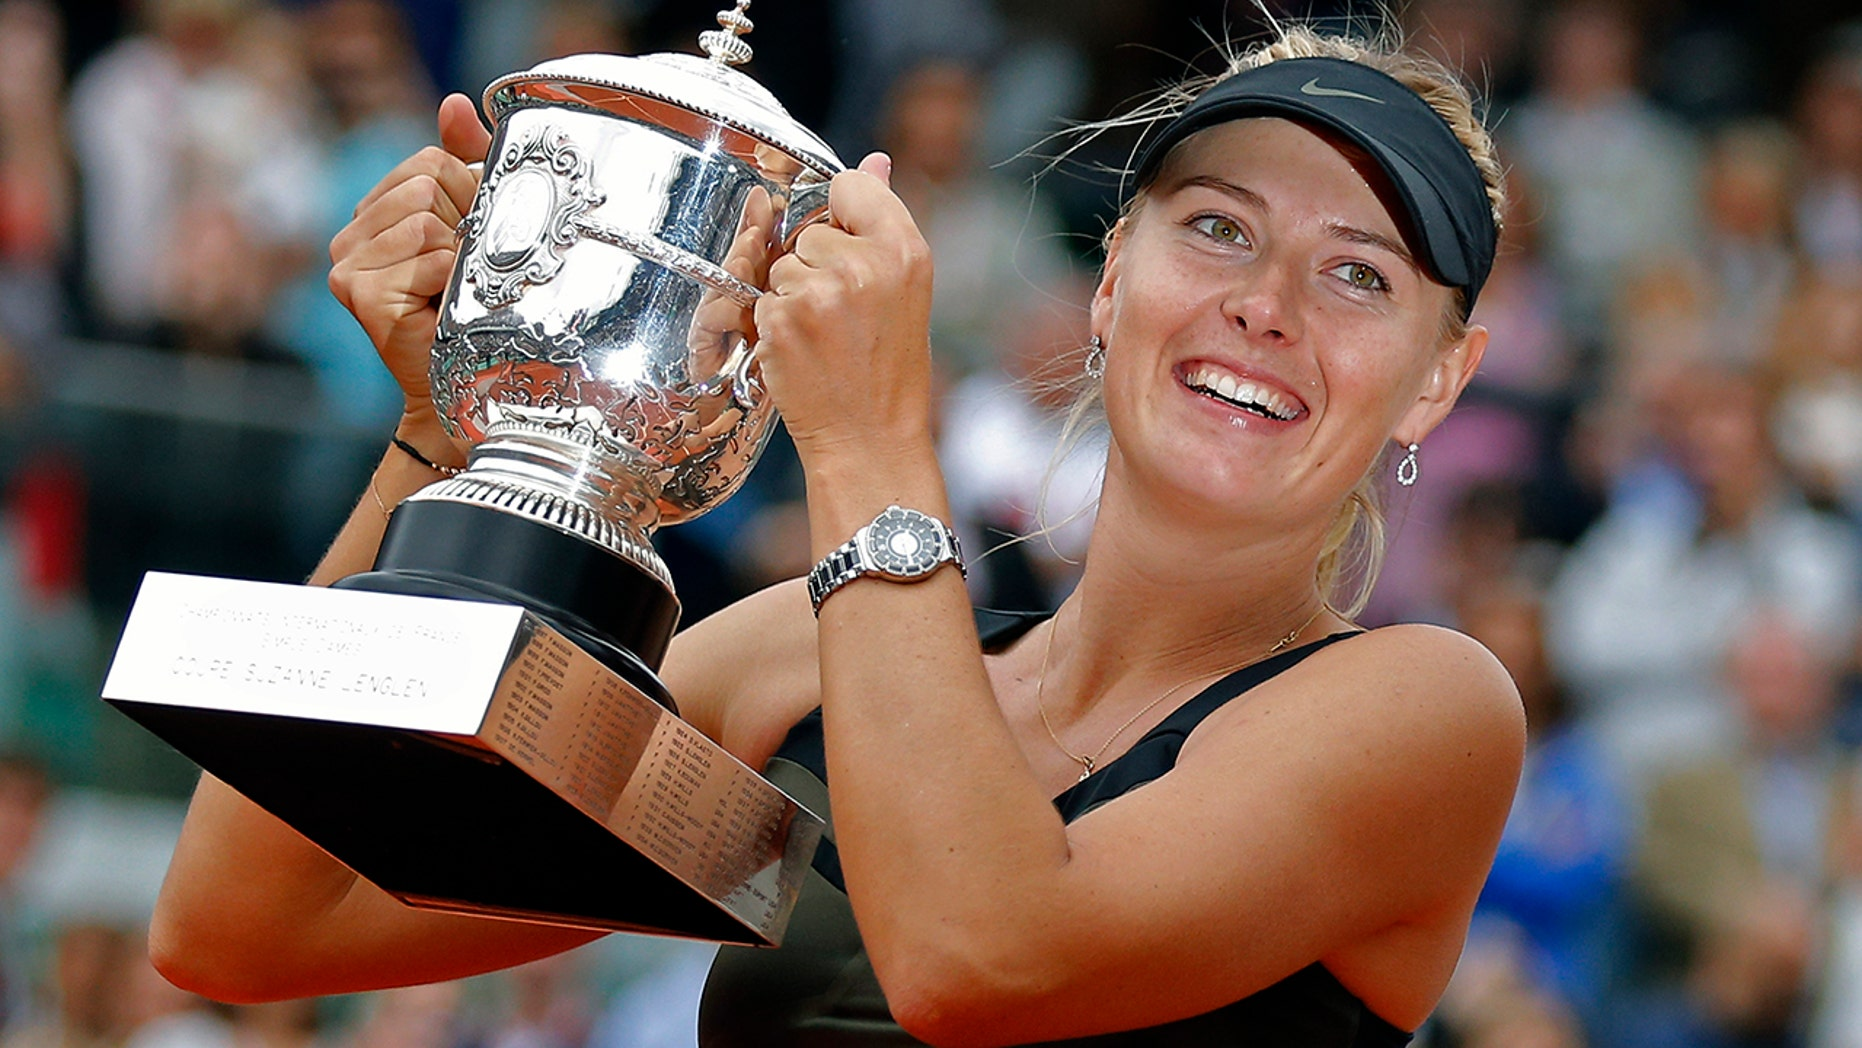 Maria Sharapova of Russia binds a prize after winning a women's final compare opposite Sara Errani of Italy during a French Open tennis contest in Roland Garros track in Paris. (AP Photo/Michel Euler, File)